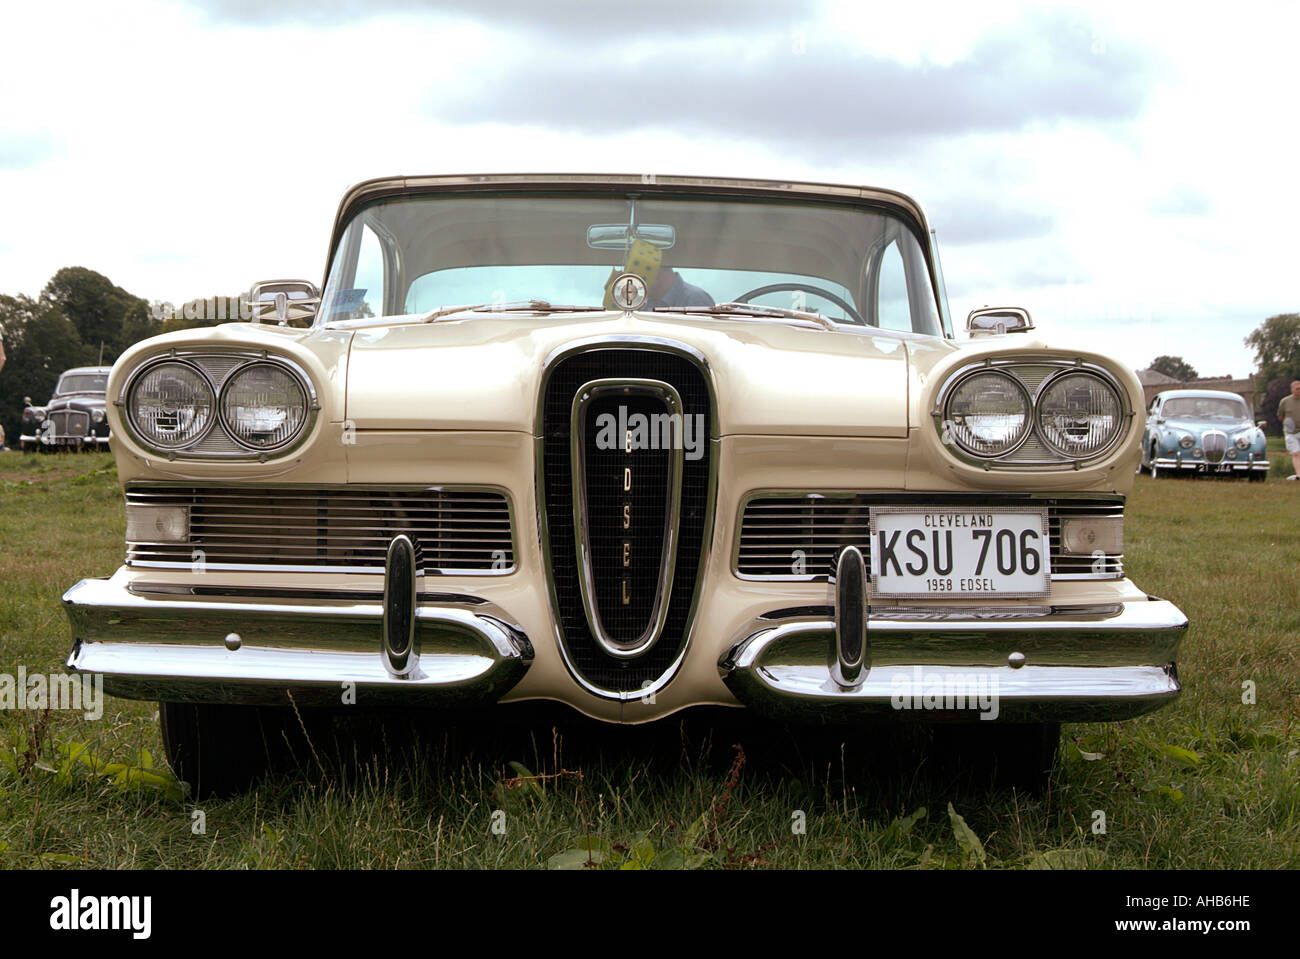 the ford edsel failure Don't put yourself in a situation you can't get out of a year before launch, ford began a teaser campaign for the e-car, the code name for the edsel as it was being developed.